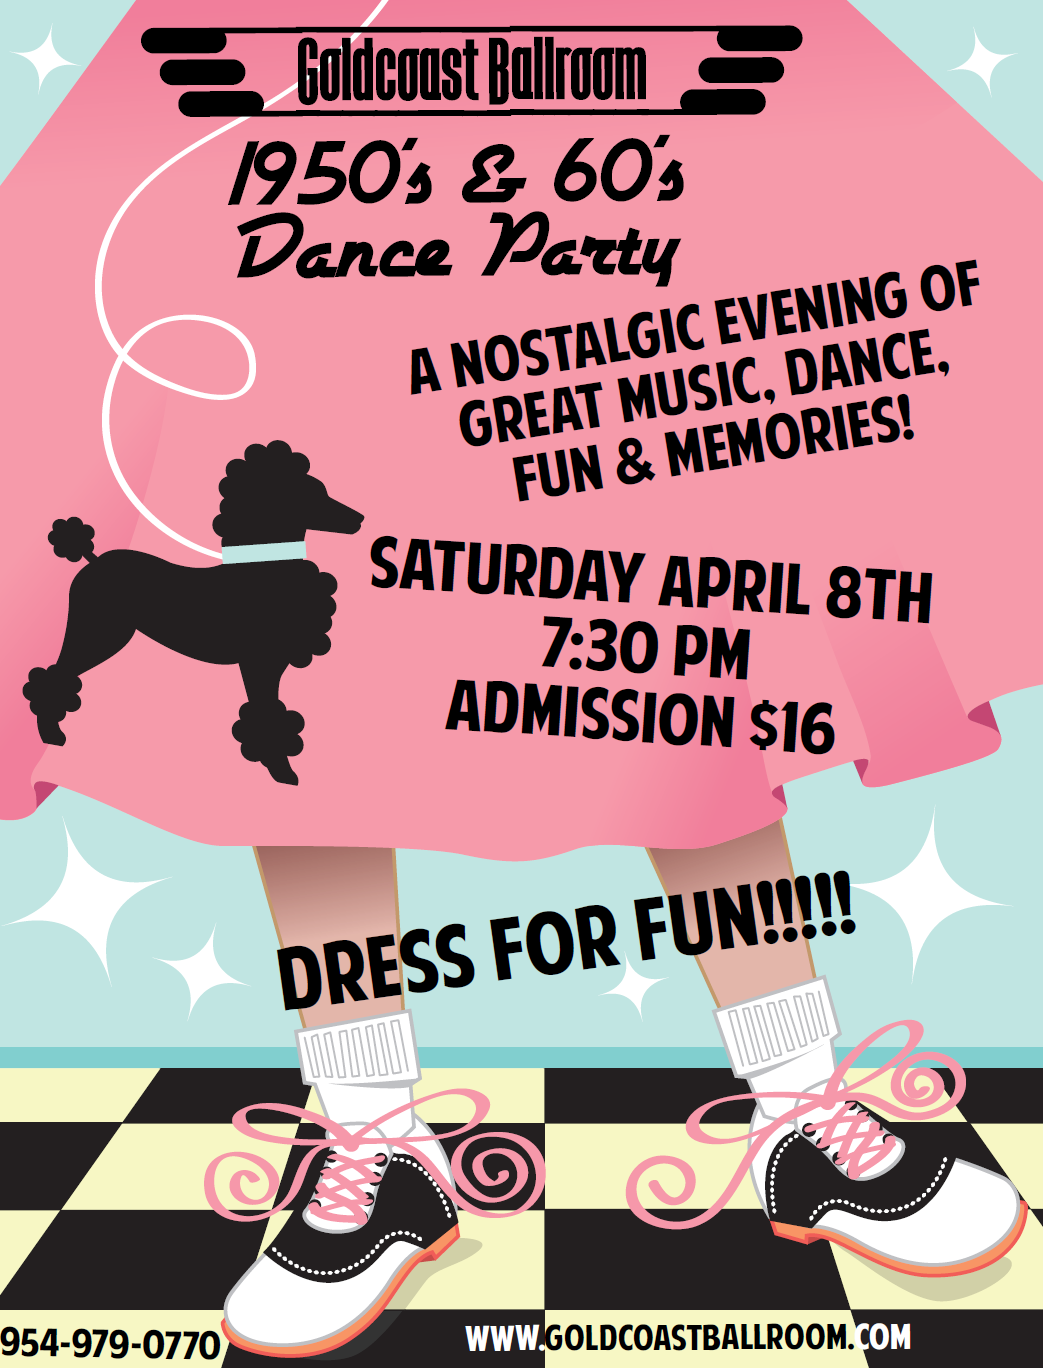 1950's & 60's Dance Party - April 8, 2017 - Goldcoast Ballroom